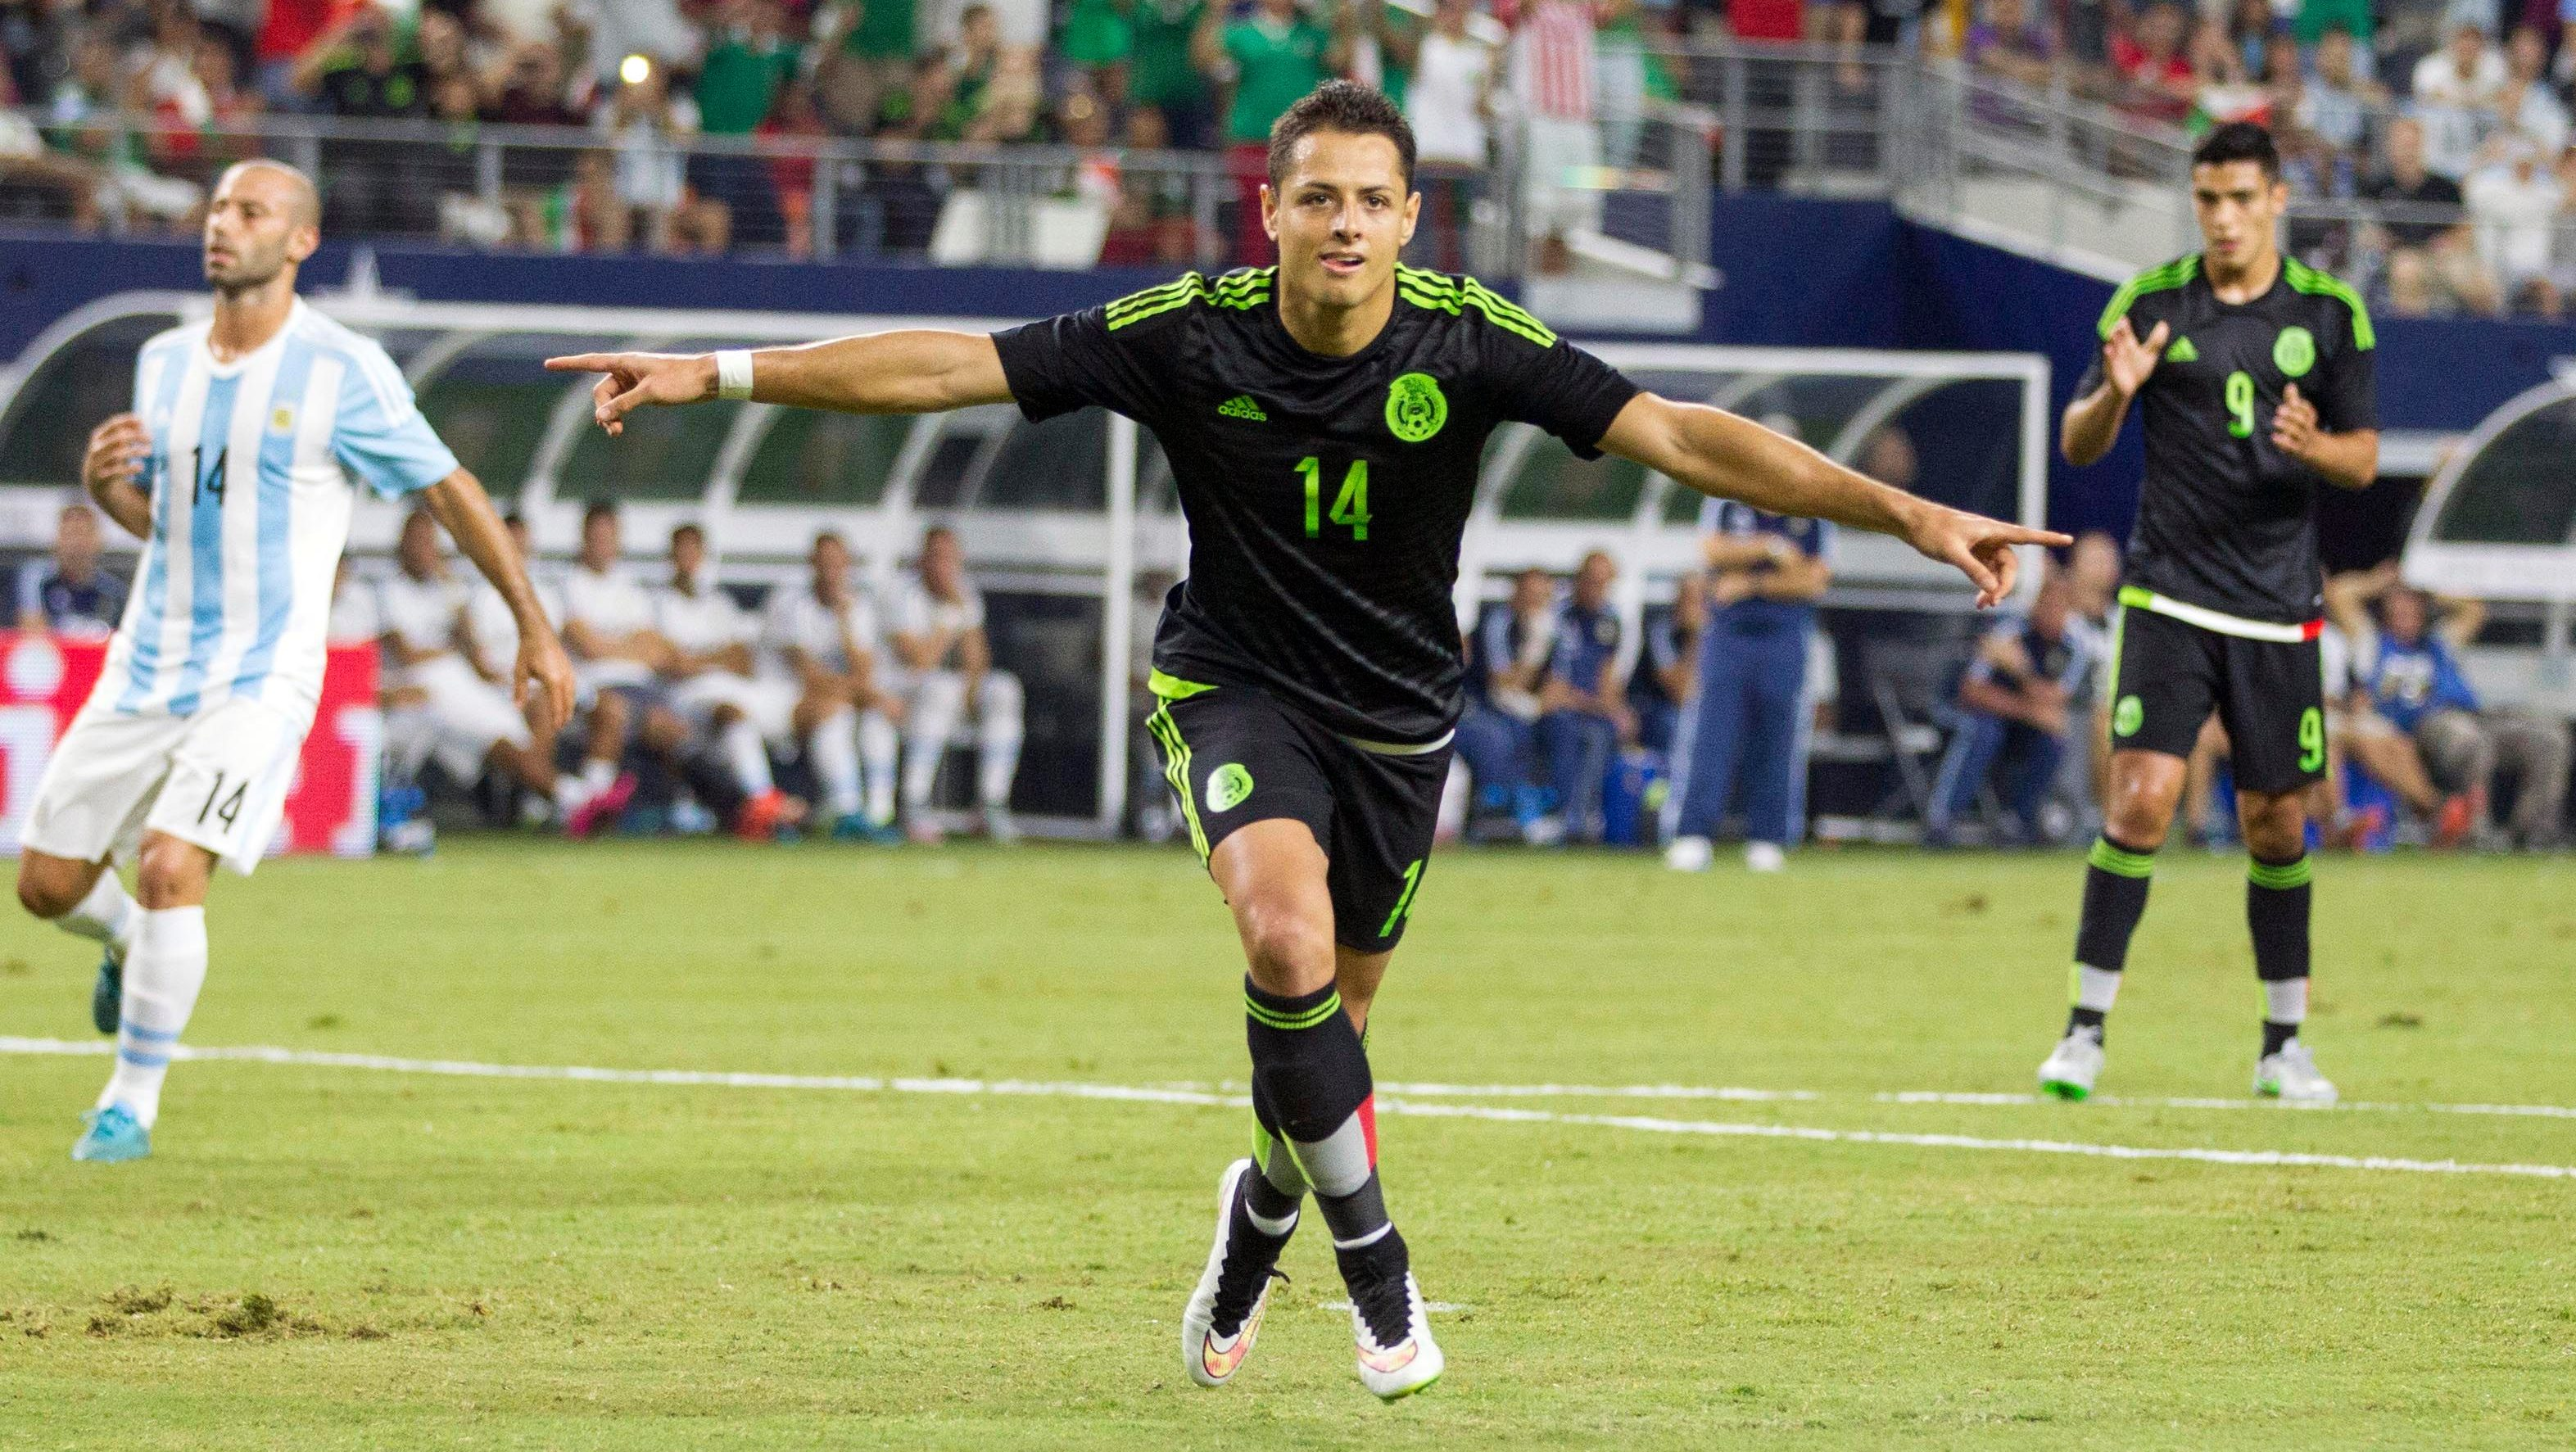 Mexico s national soccer team will be at home at Dallas  NFL stadium a05df8b05